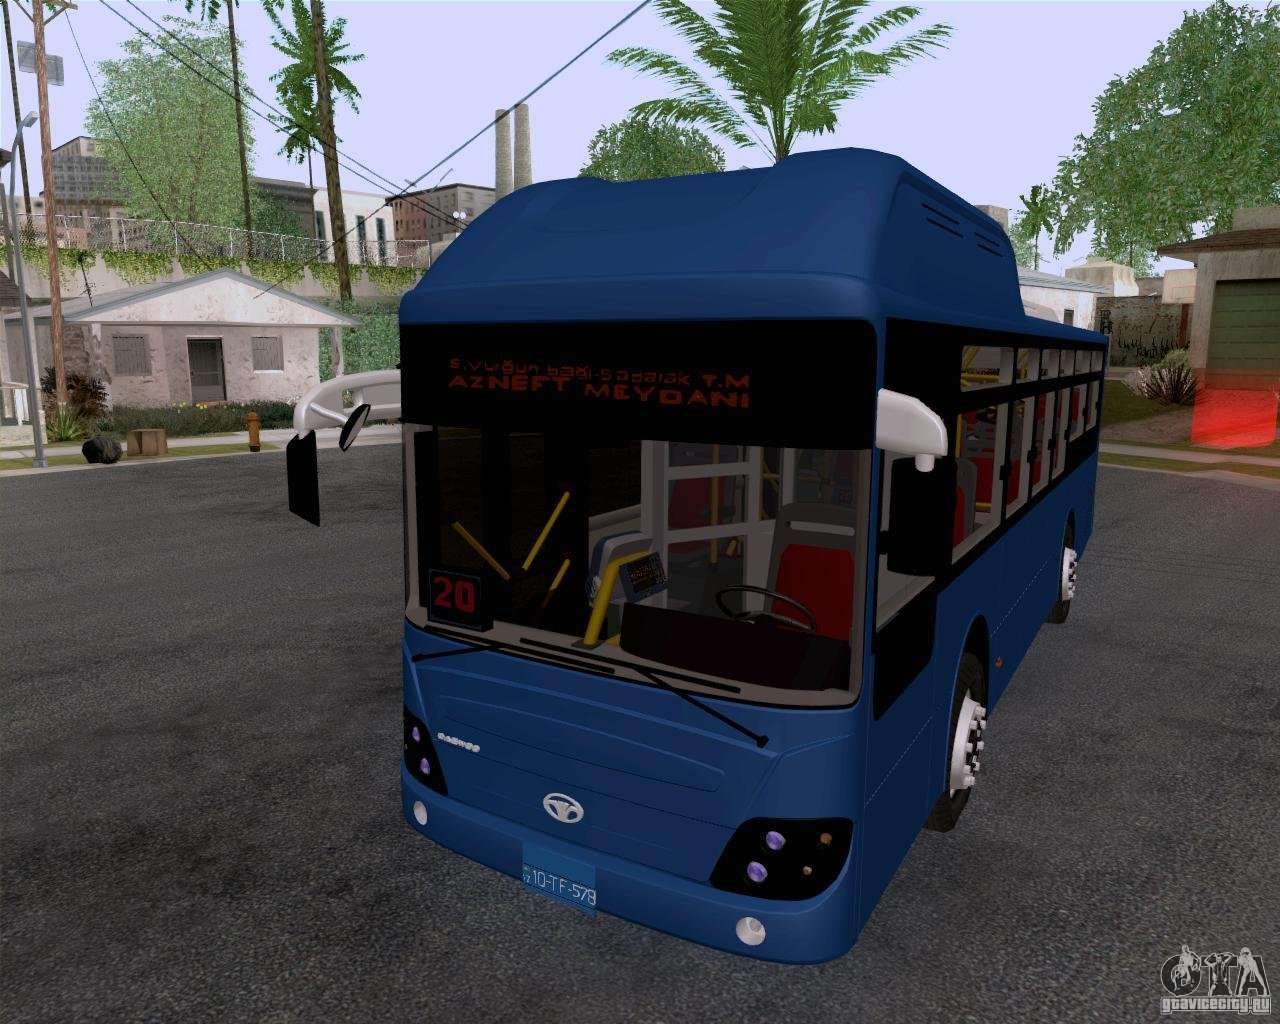 GTA San Andreas Limo Dff Only Mod Android Mod GTAinside com